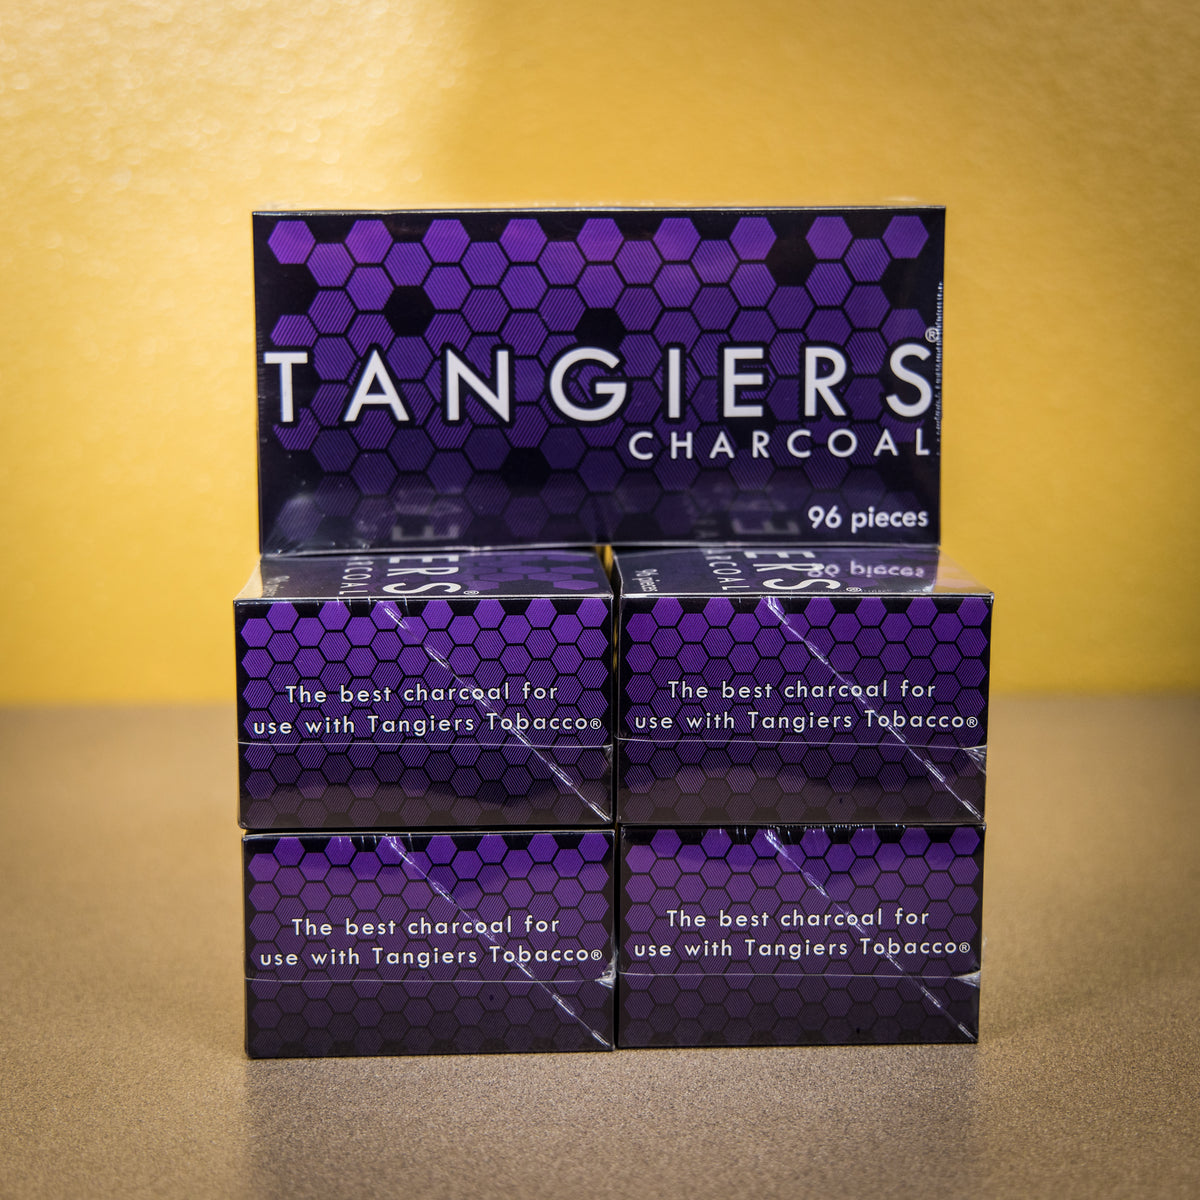 TANGIERS JAPANESE CHARCOAL 5-PACK (2nd Gen)